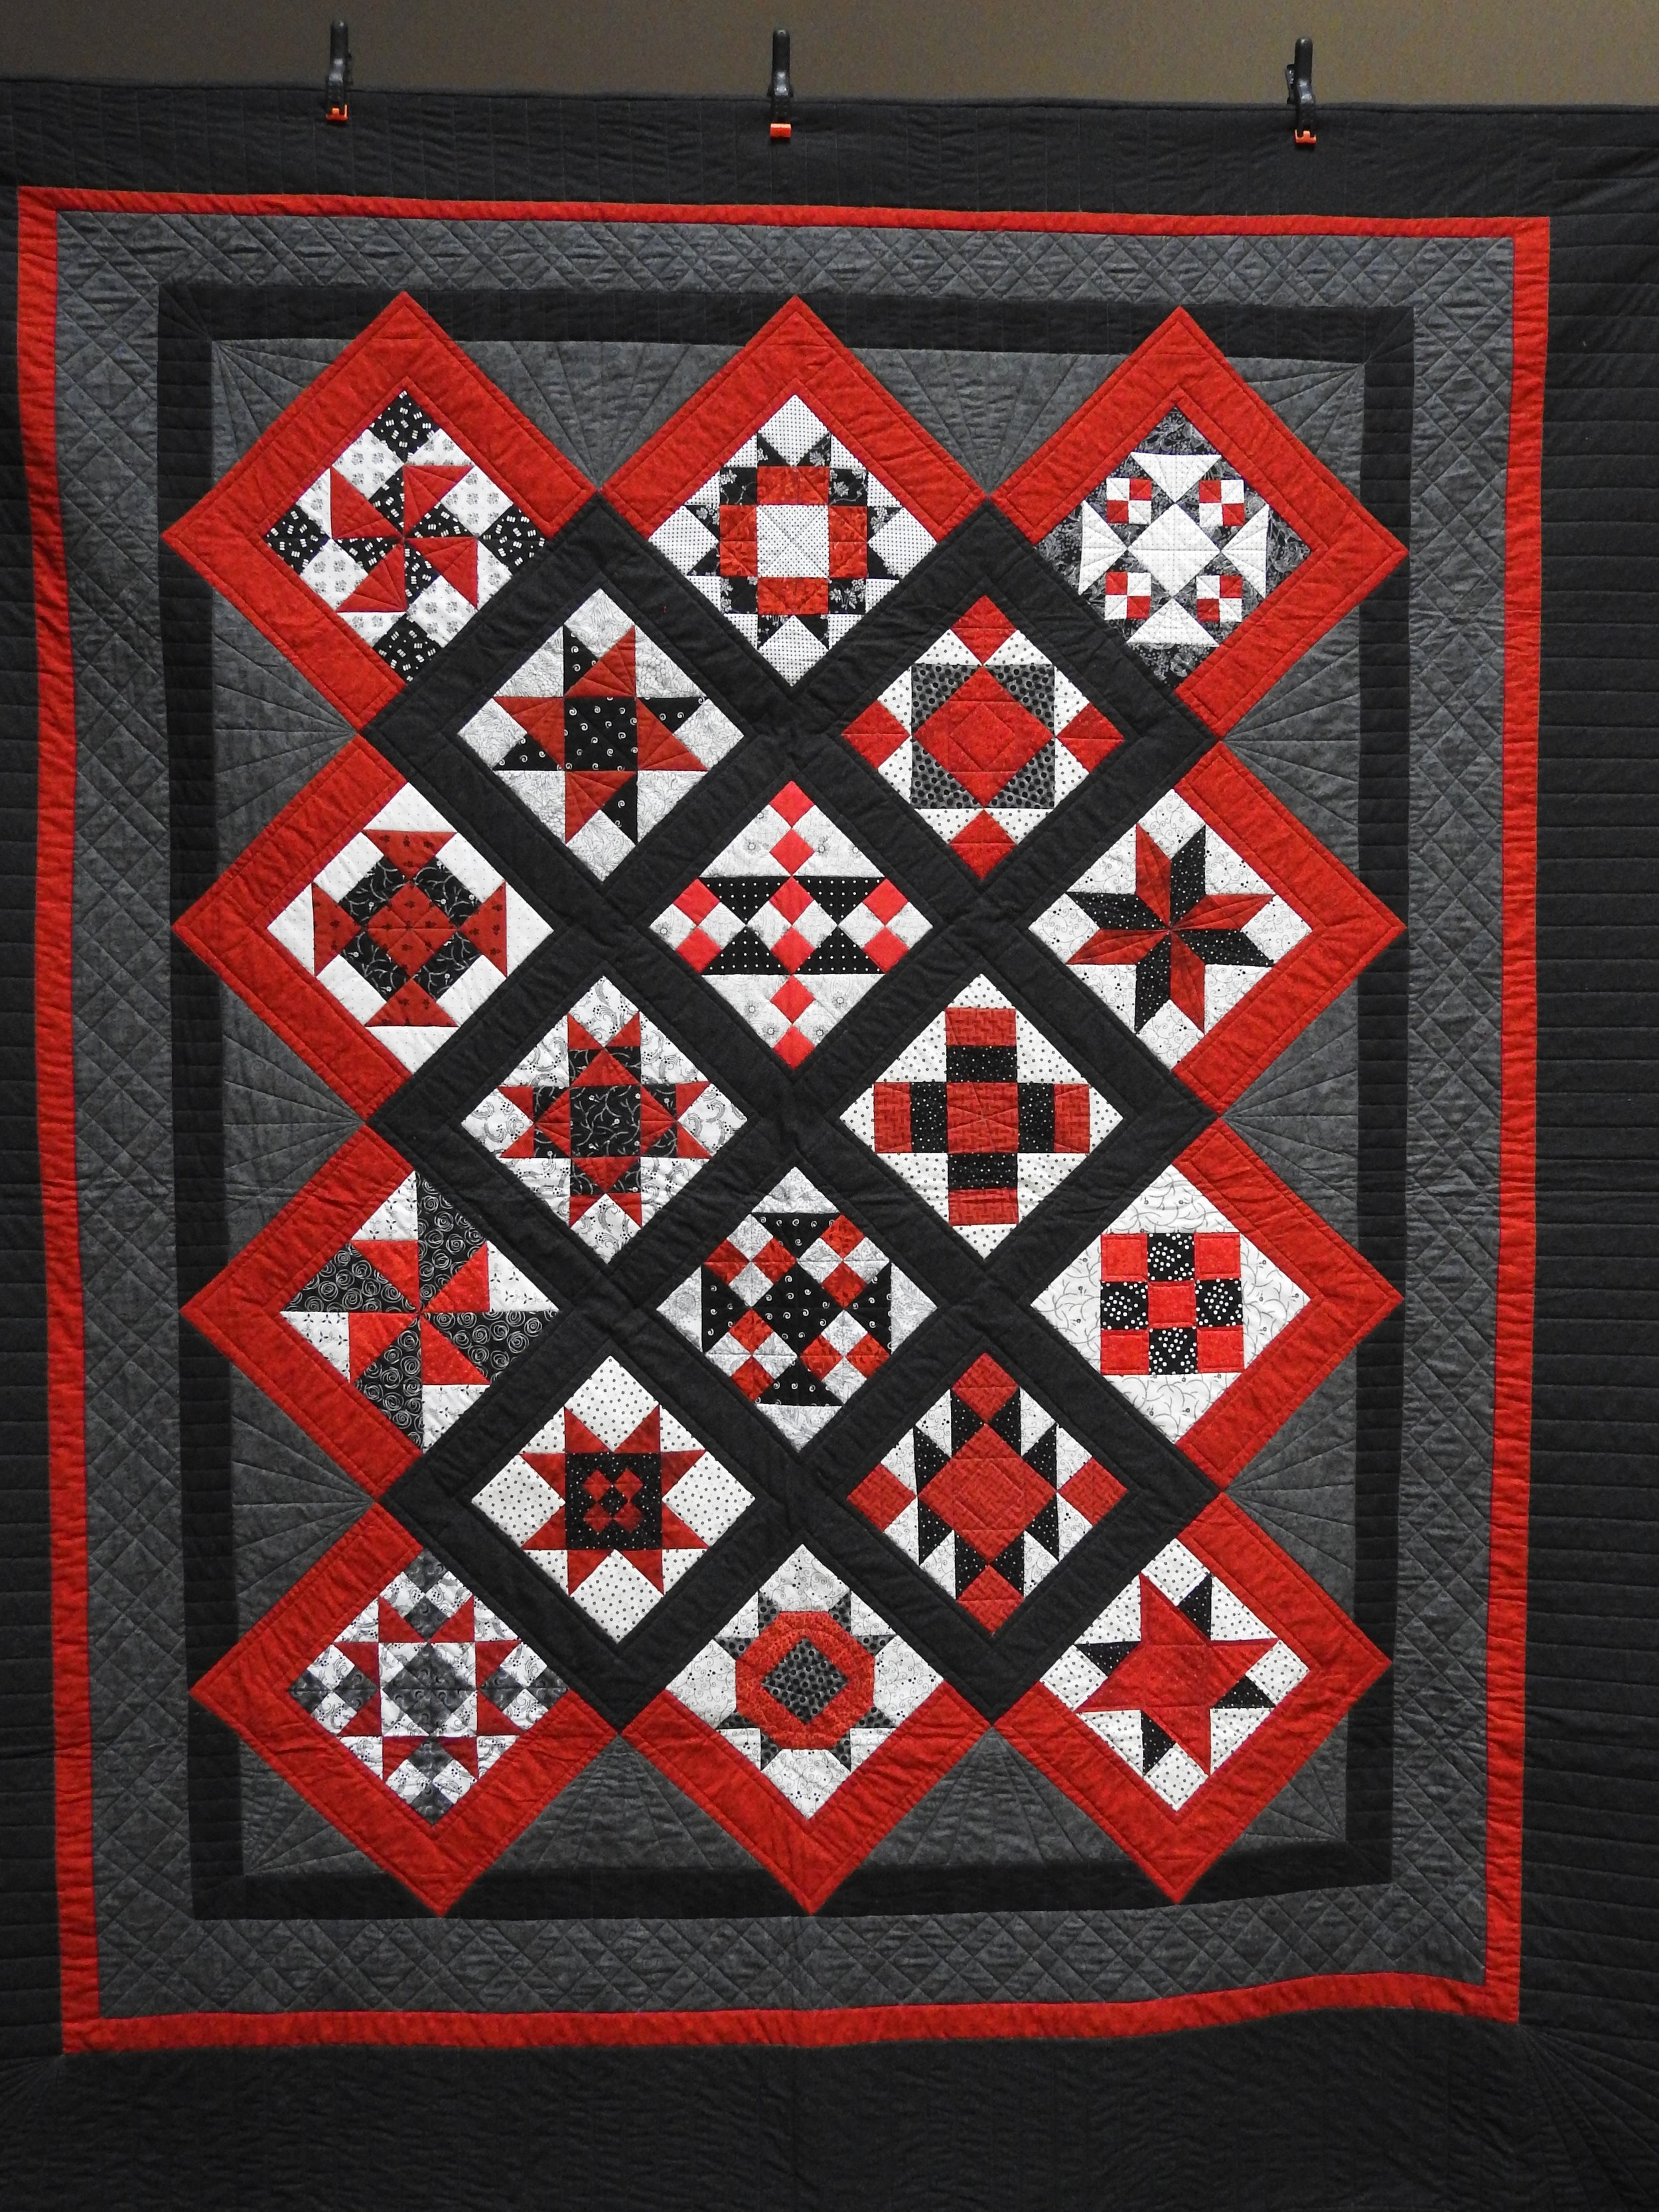 Sampler in Red & Black, Pieced, Custom Machine Quilted, Anonymously donated, 86 x 92""